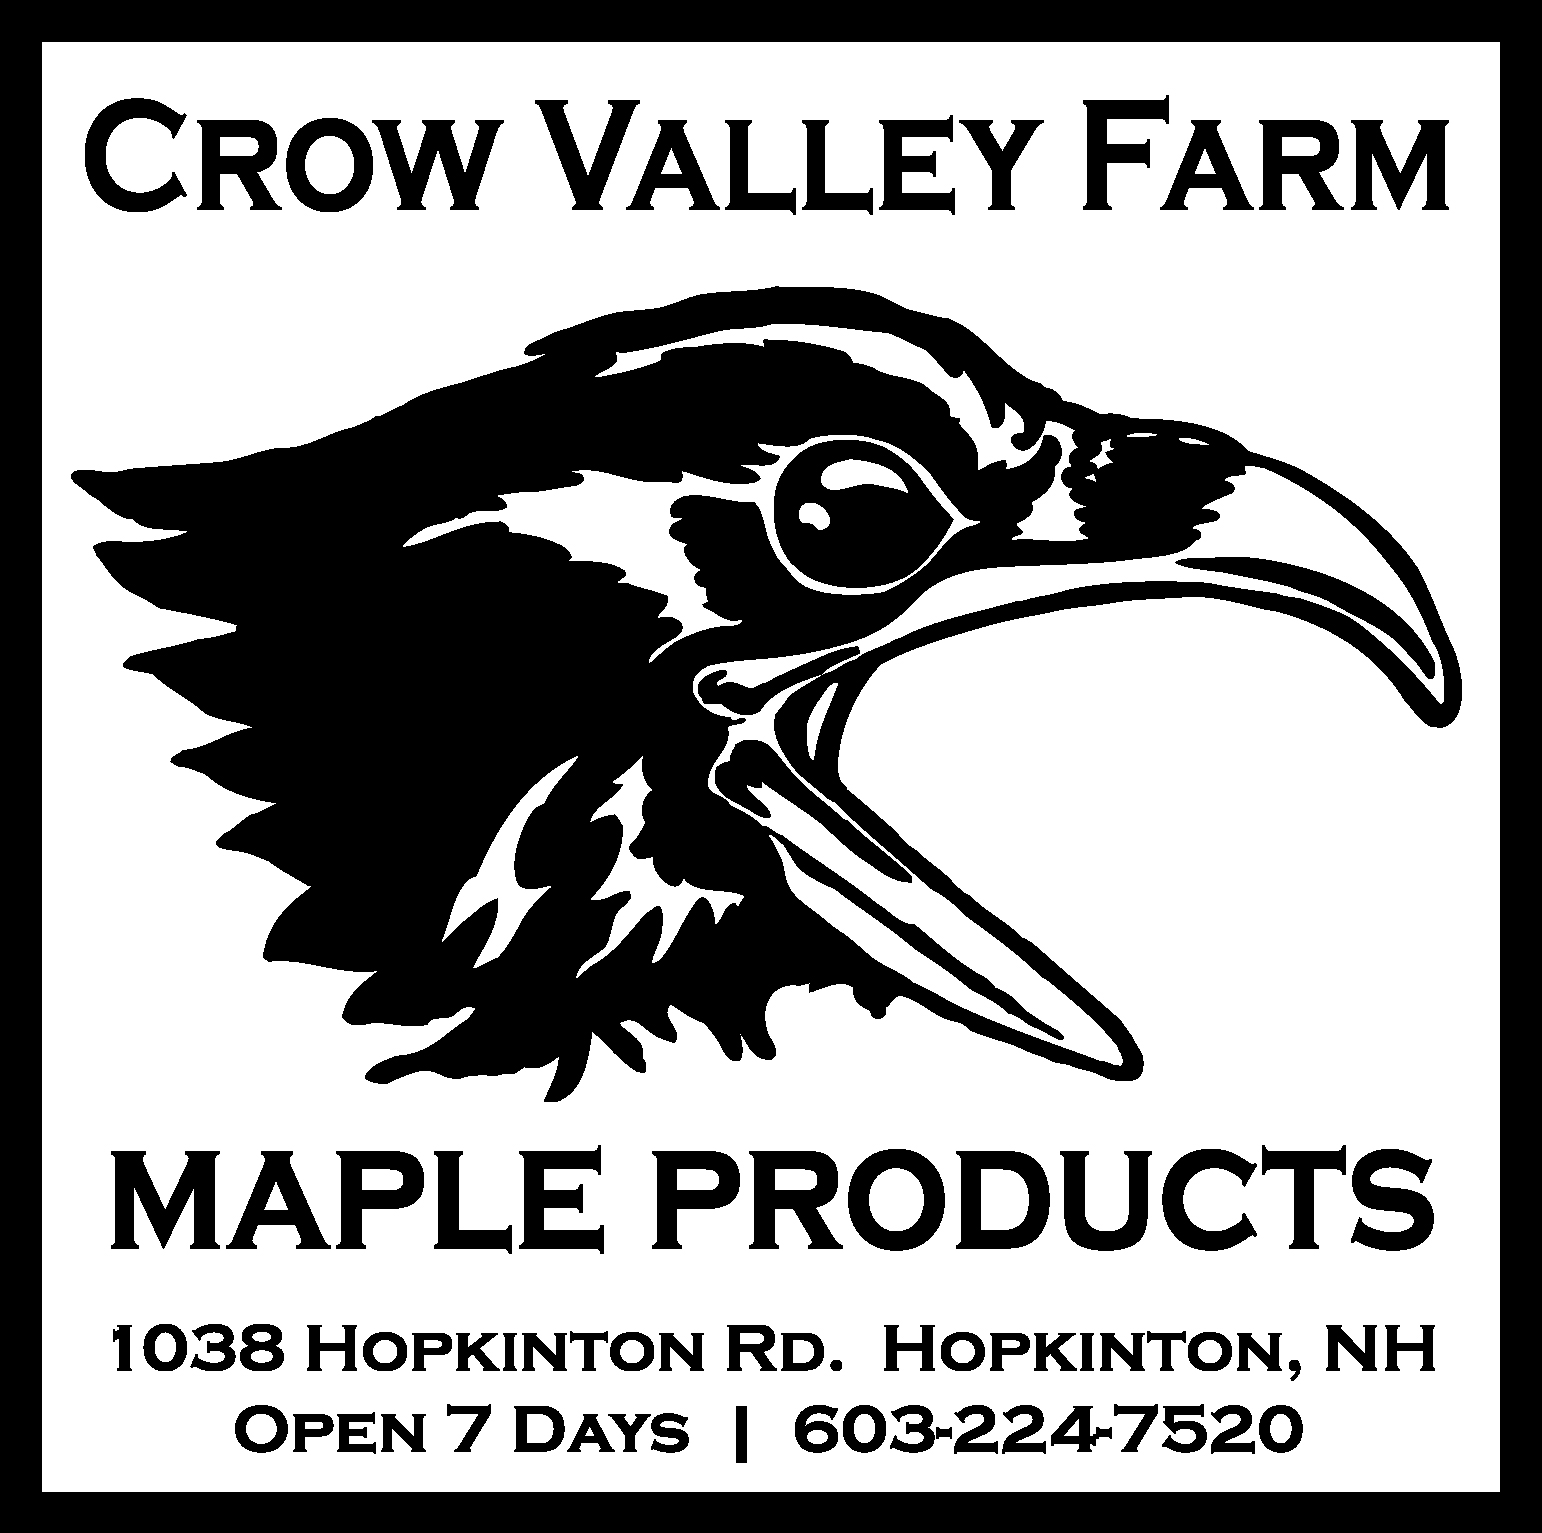 Crow Valley Farm